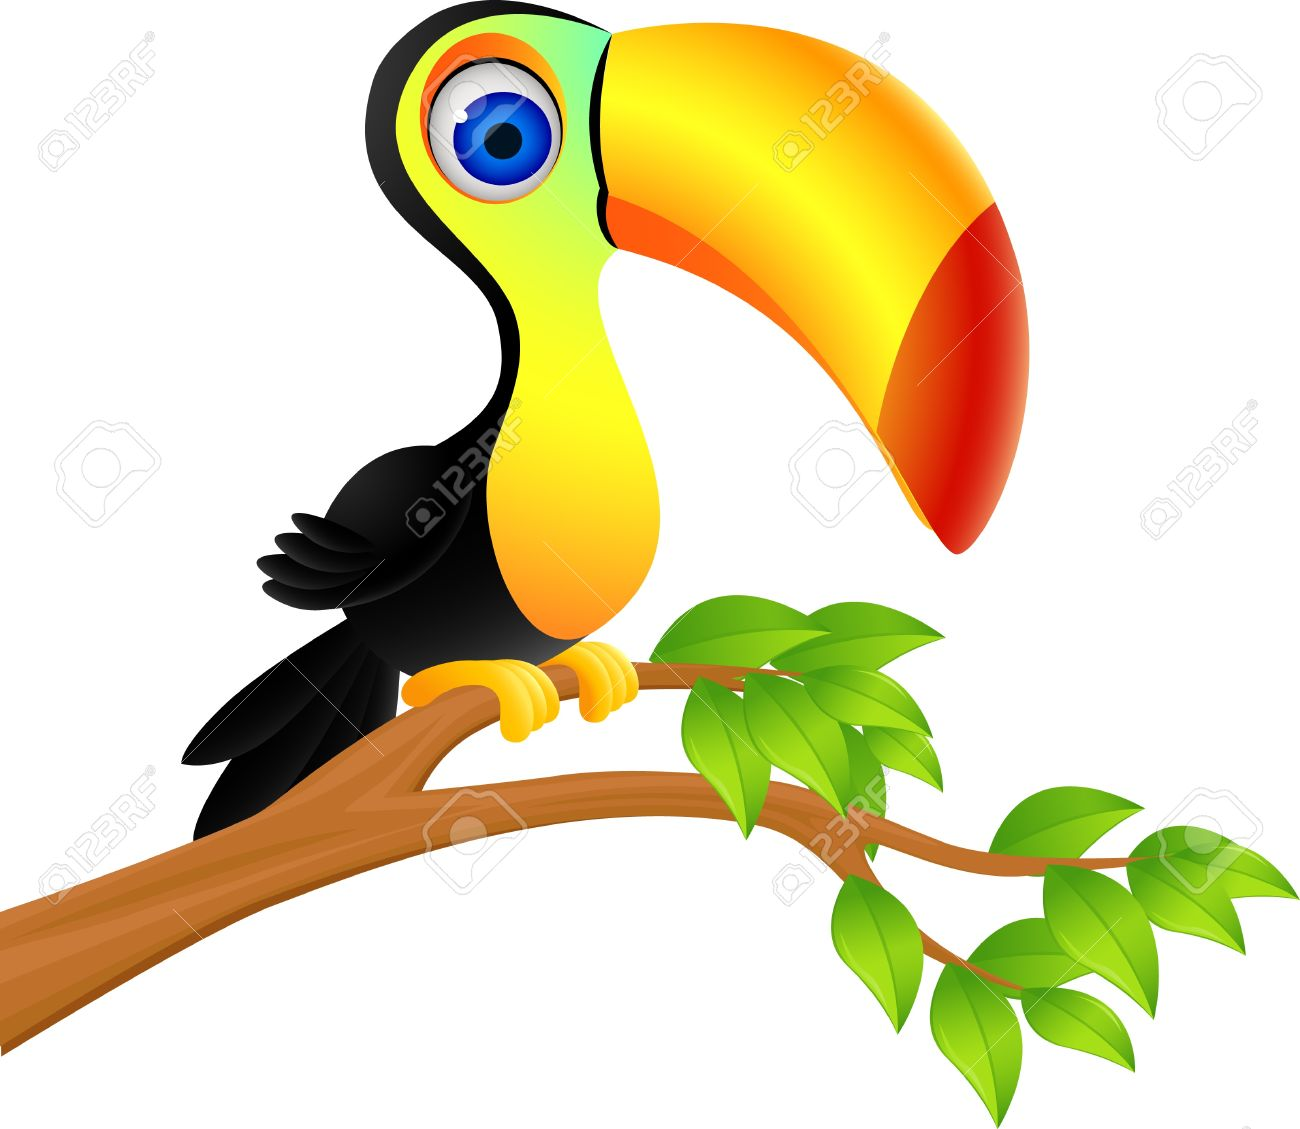 Toucan rainforest monkey